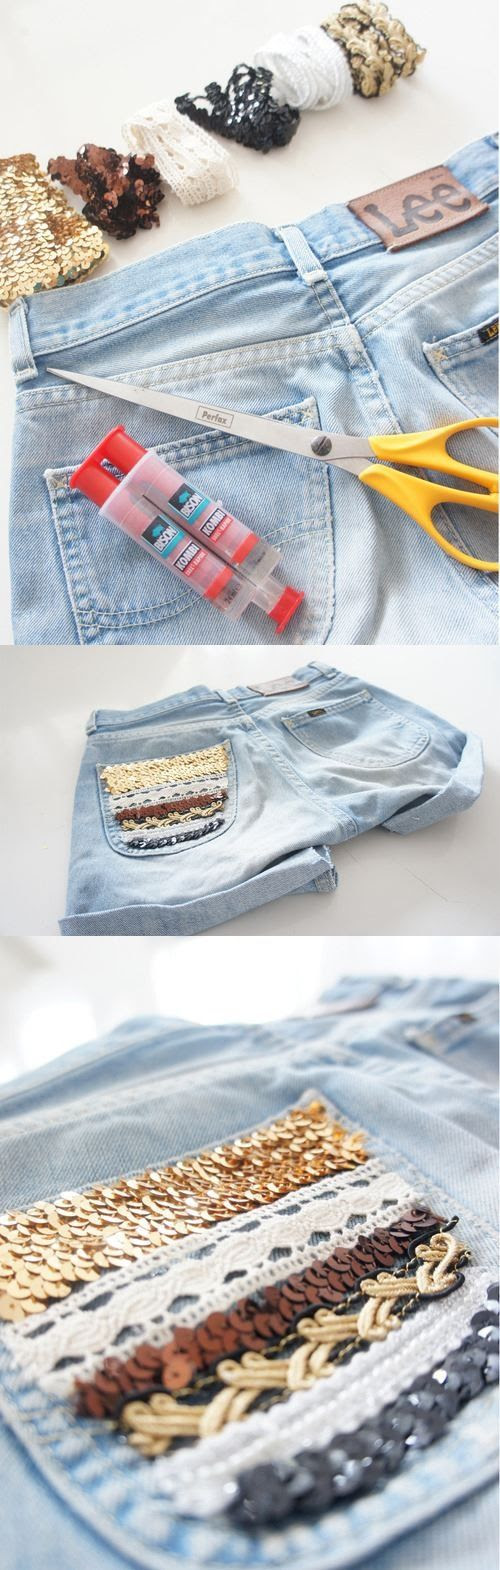 16 Best DIY Fashion Ideas Ever. These shorts are hella adorable